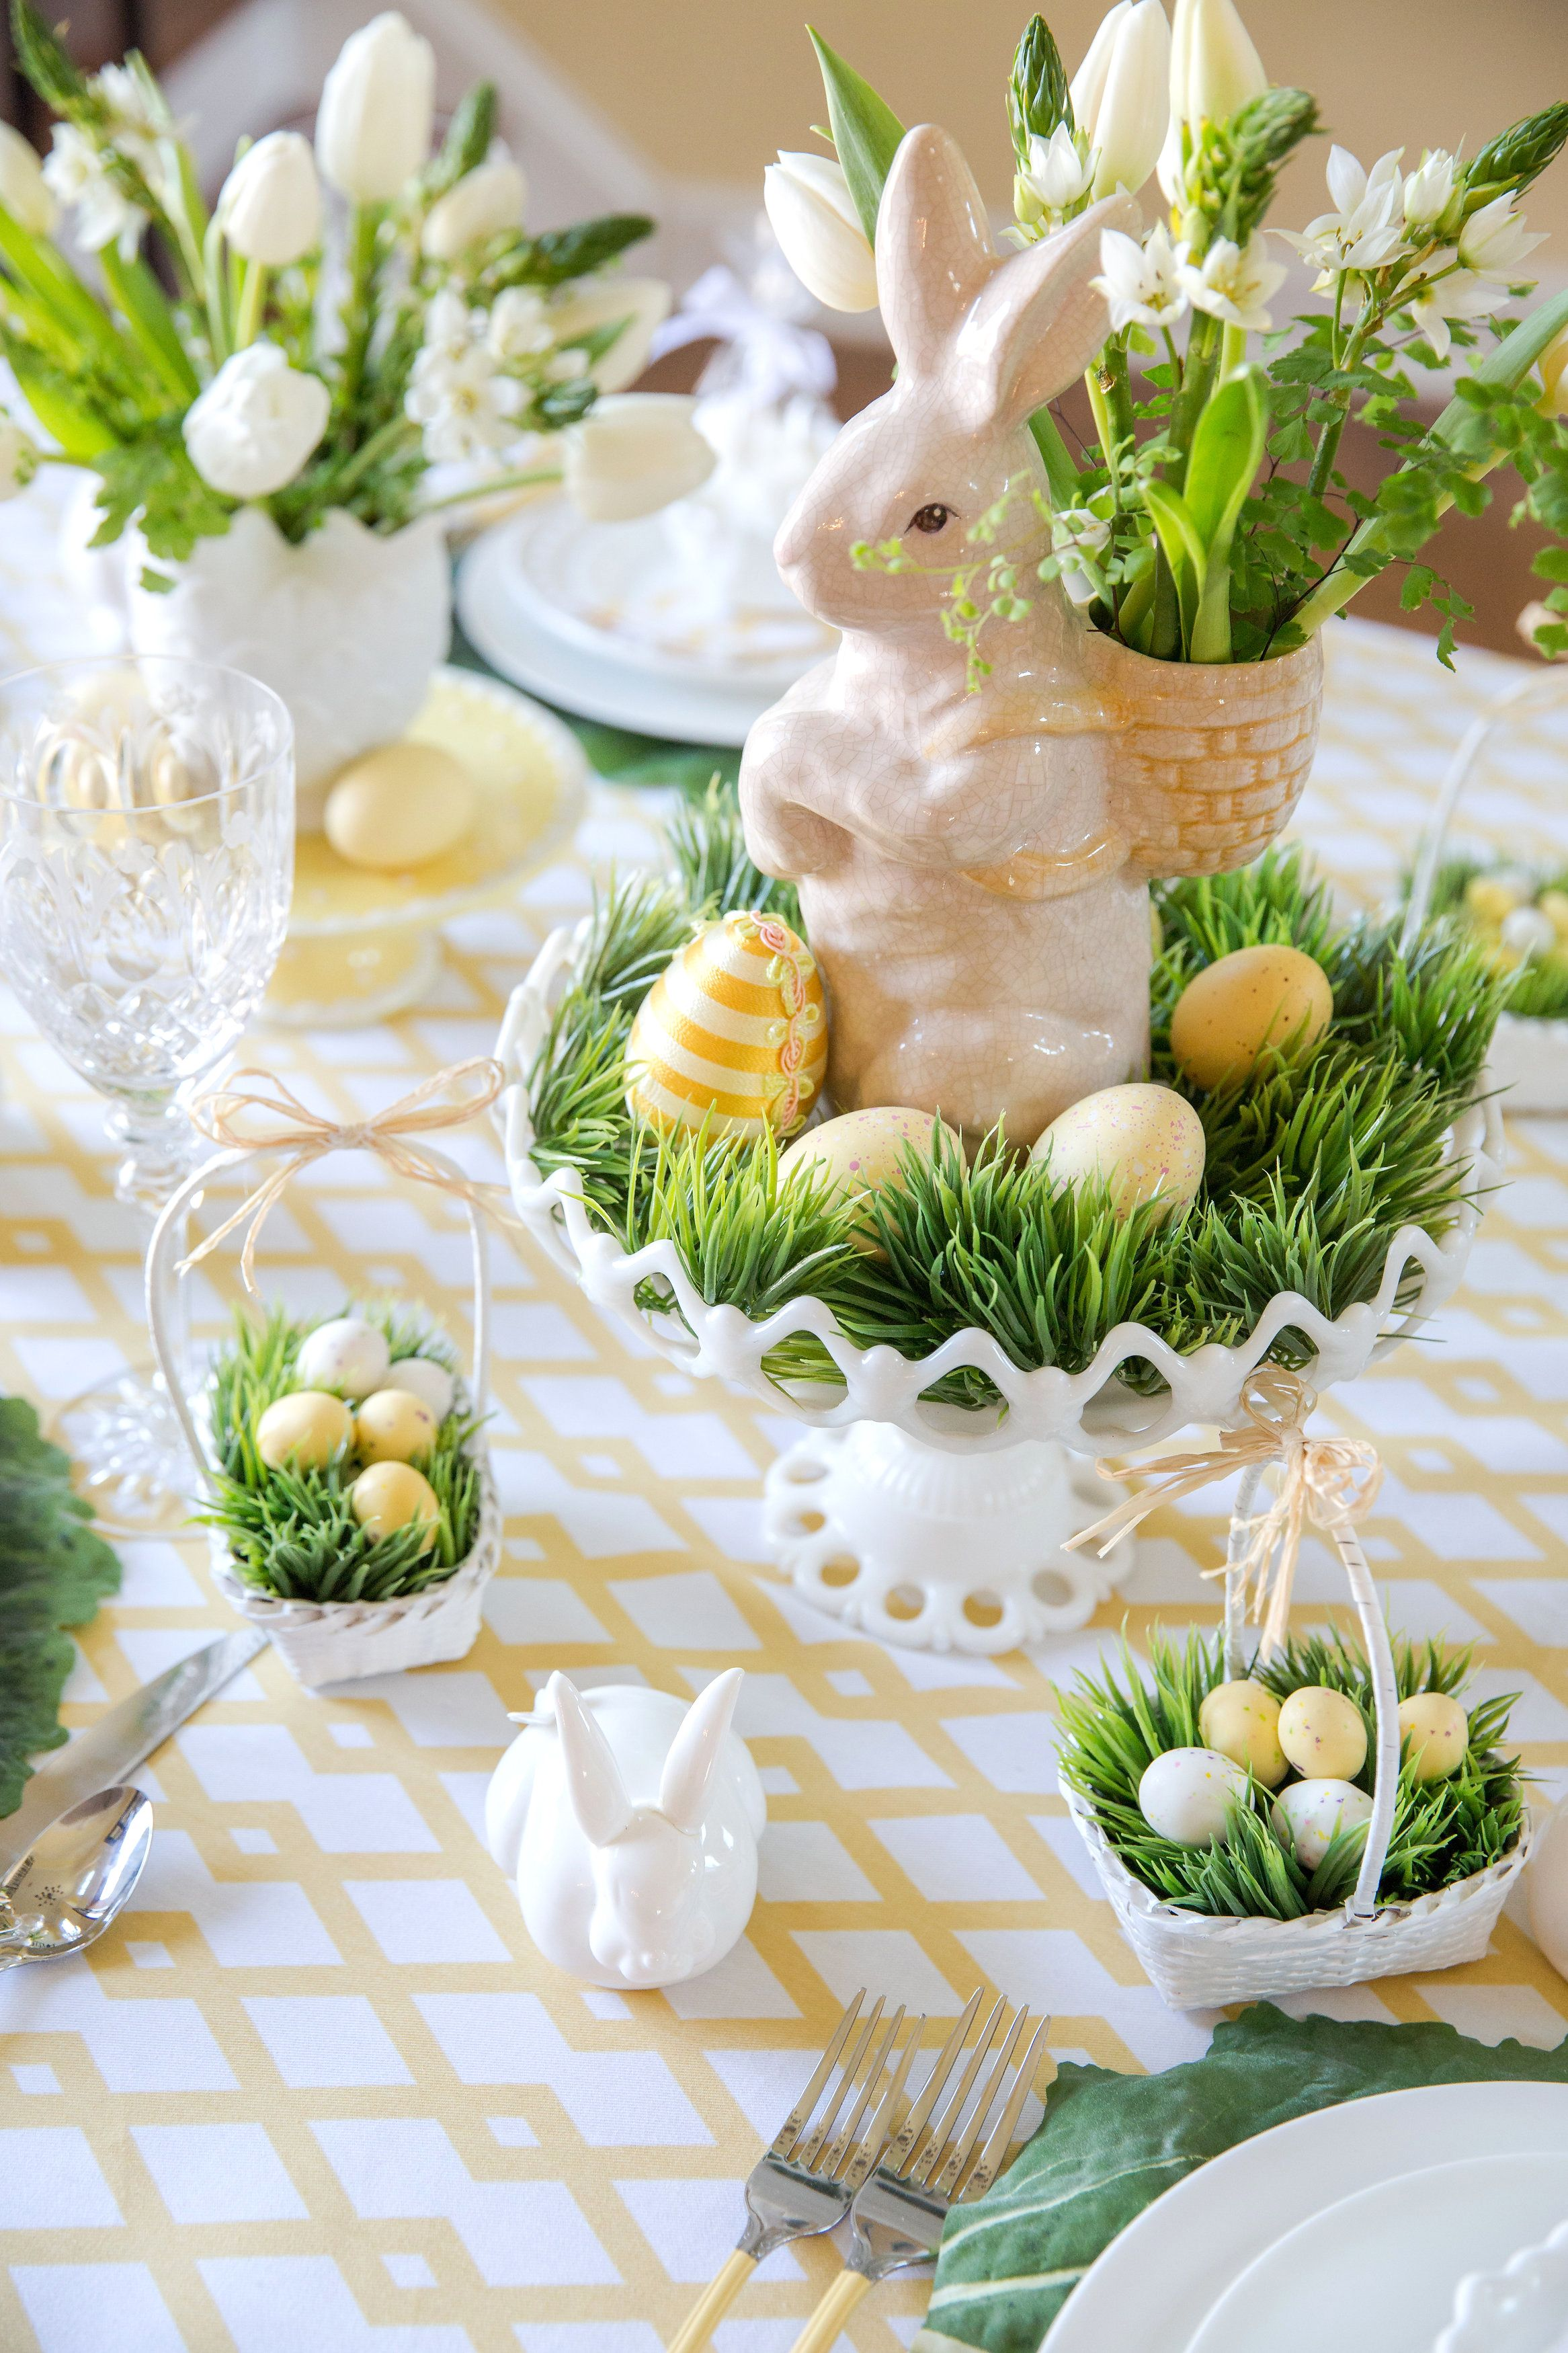 Easter Table Decorations & Place Setting Ideas   Easter table, Place ...